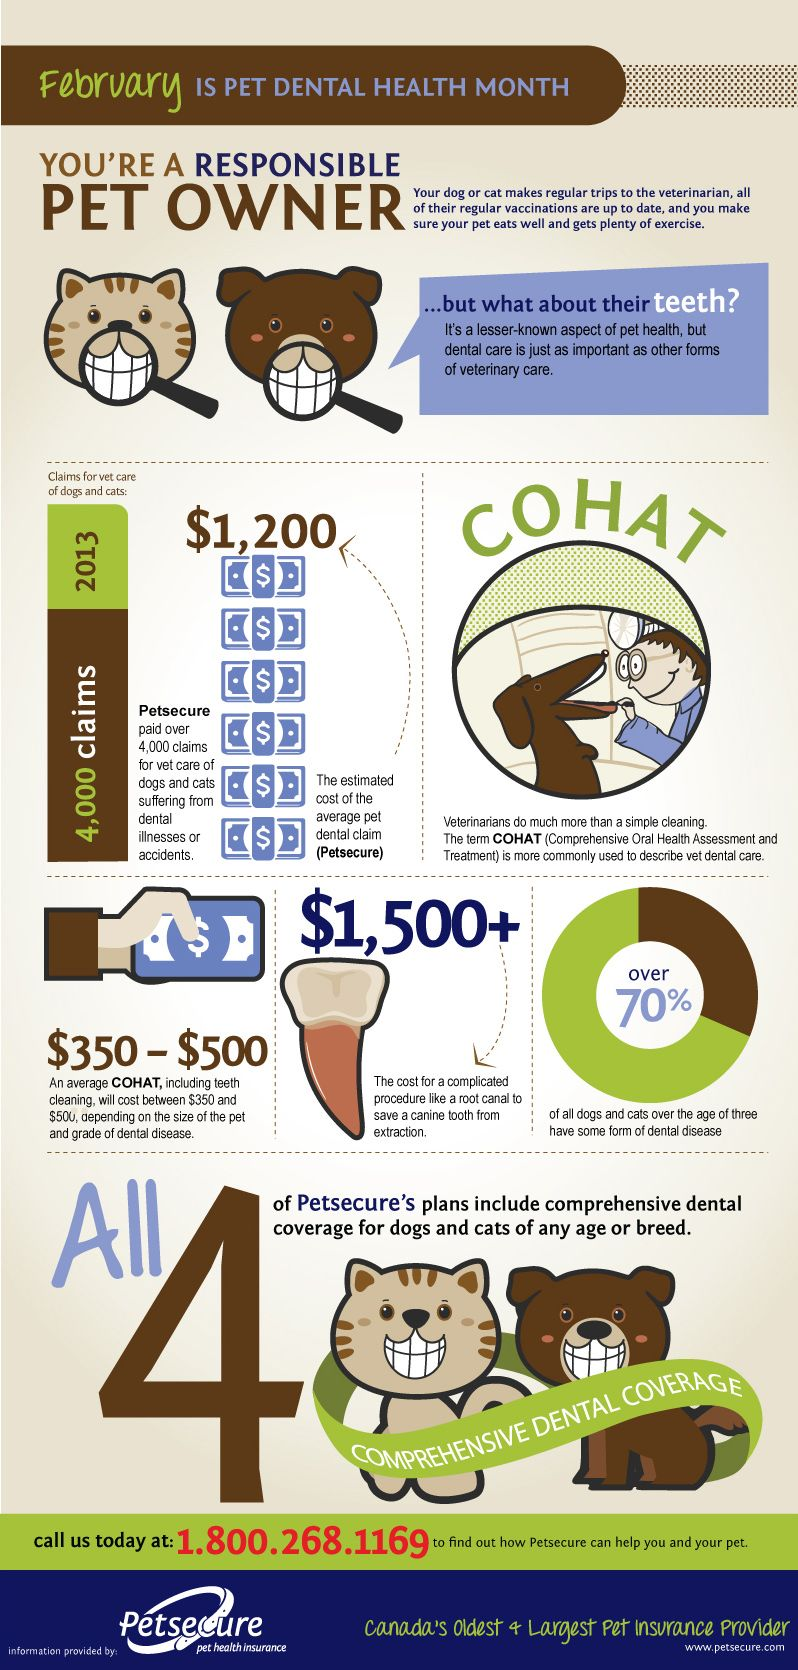 February is Pet Dental Health Month! Learn more about the